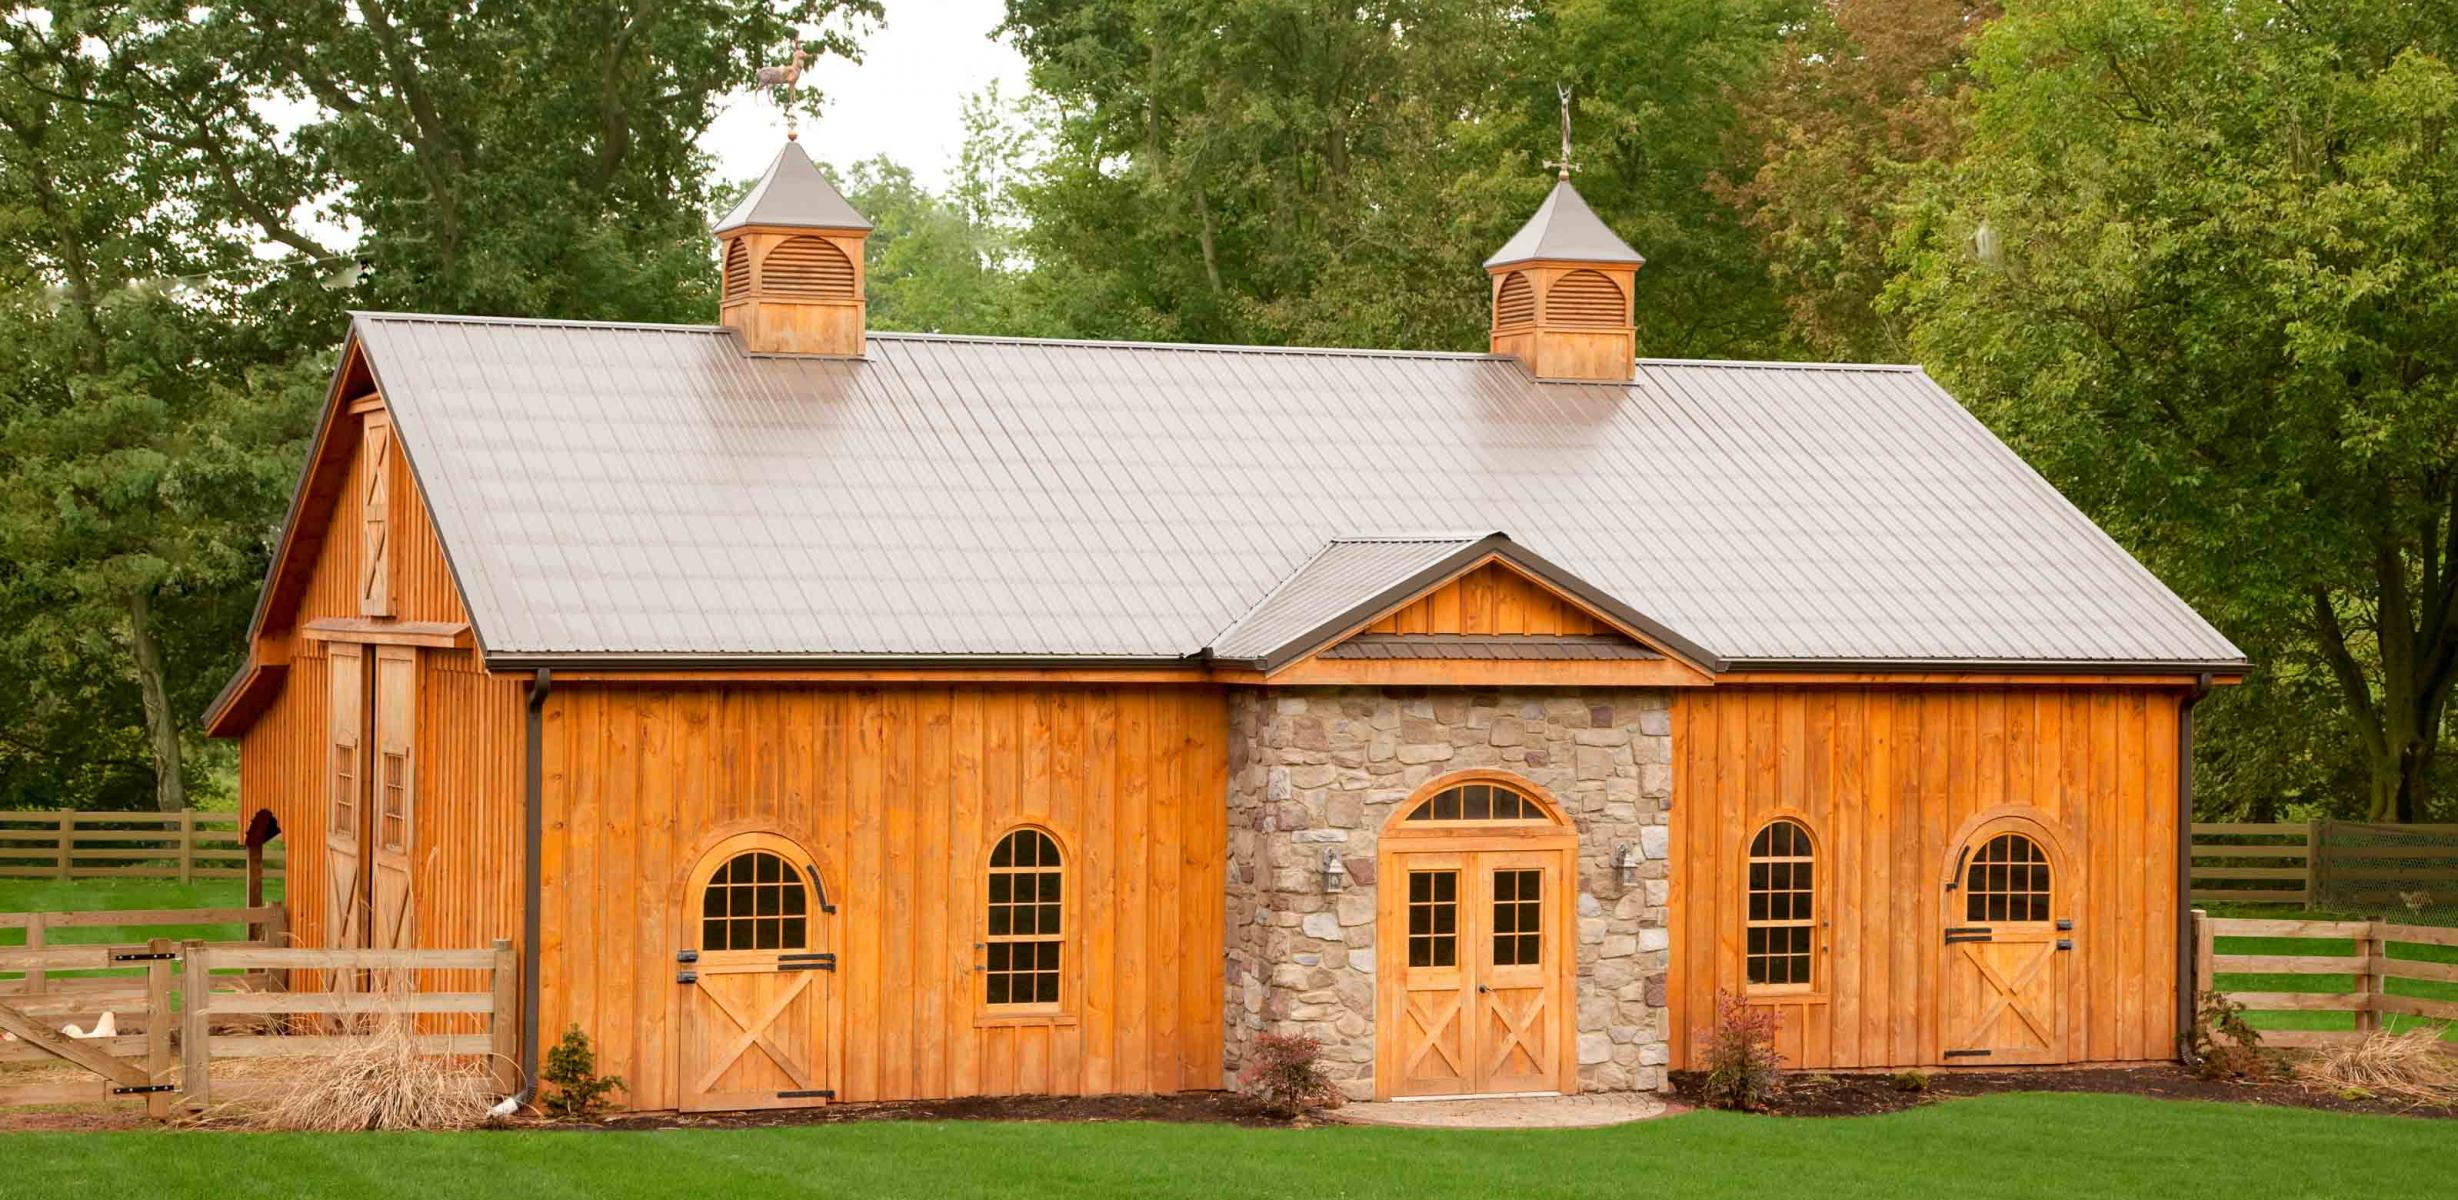 Restoration and construction experts stable hollow for 4 horse barn